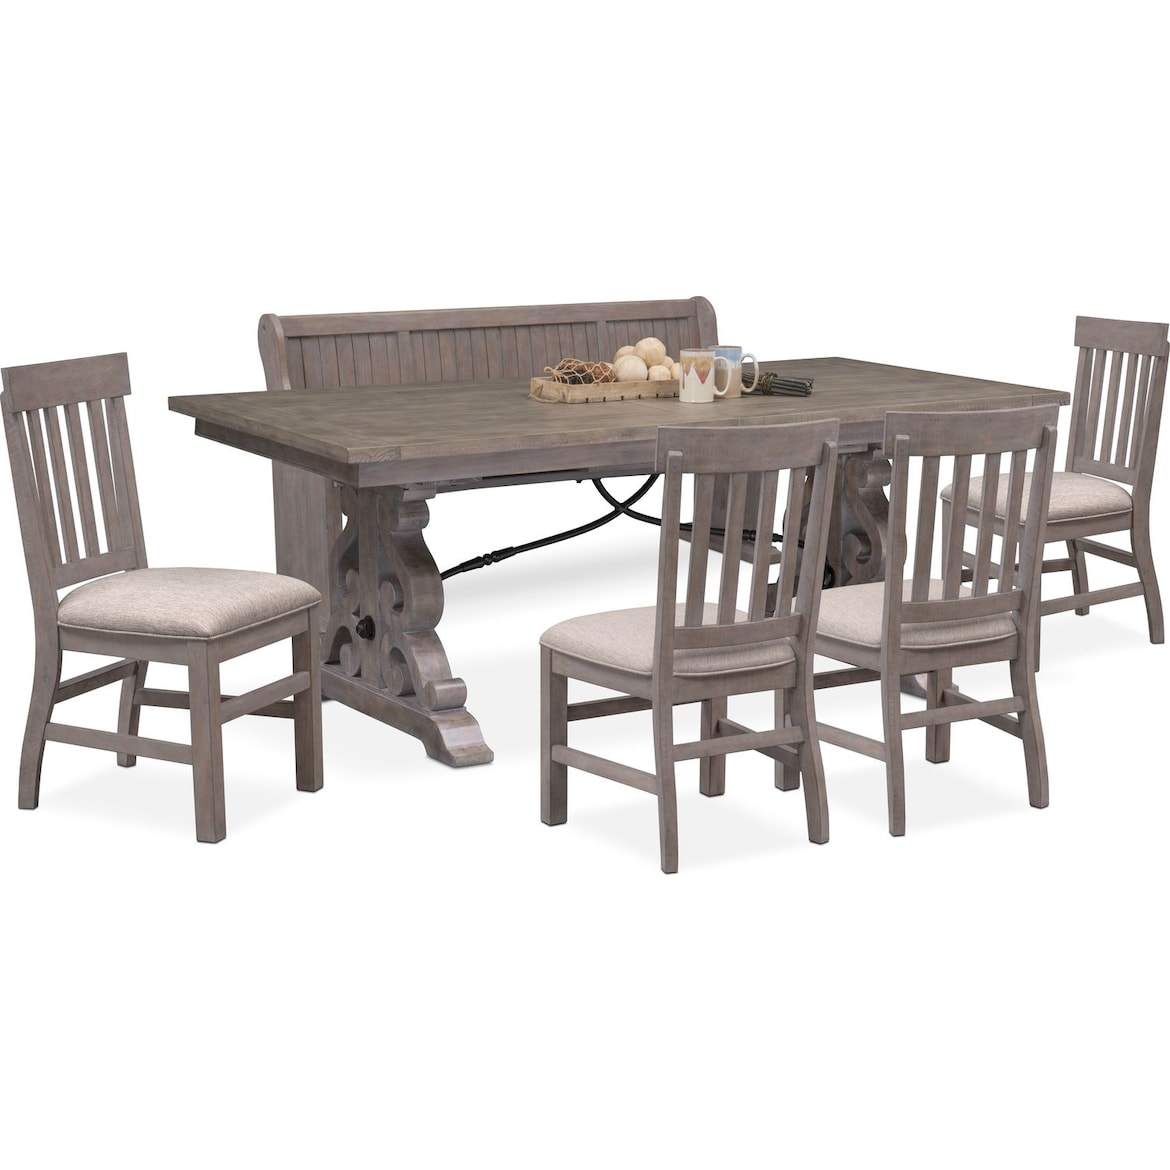 Cool Charthouse Rectangular Dining Table 4 Side Chairs And Bench Machost Co Dining Chair Design Ideas Machostcouk